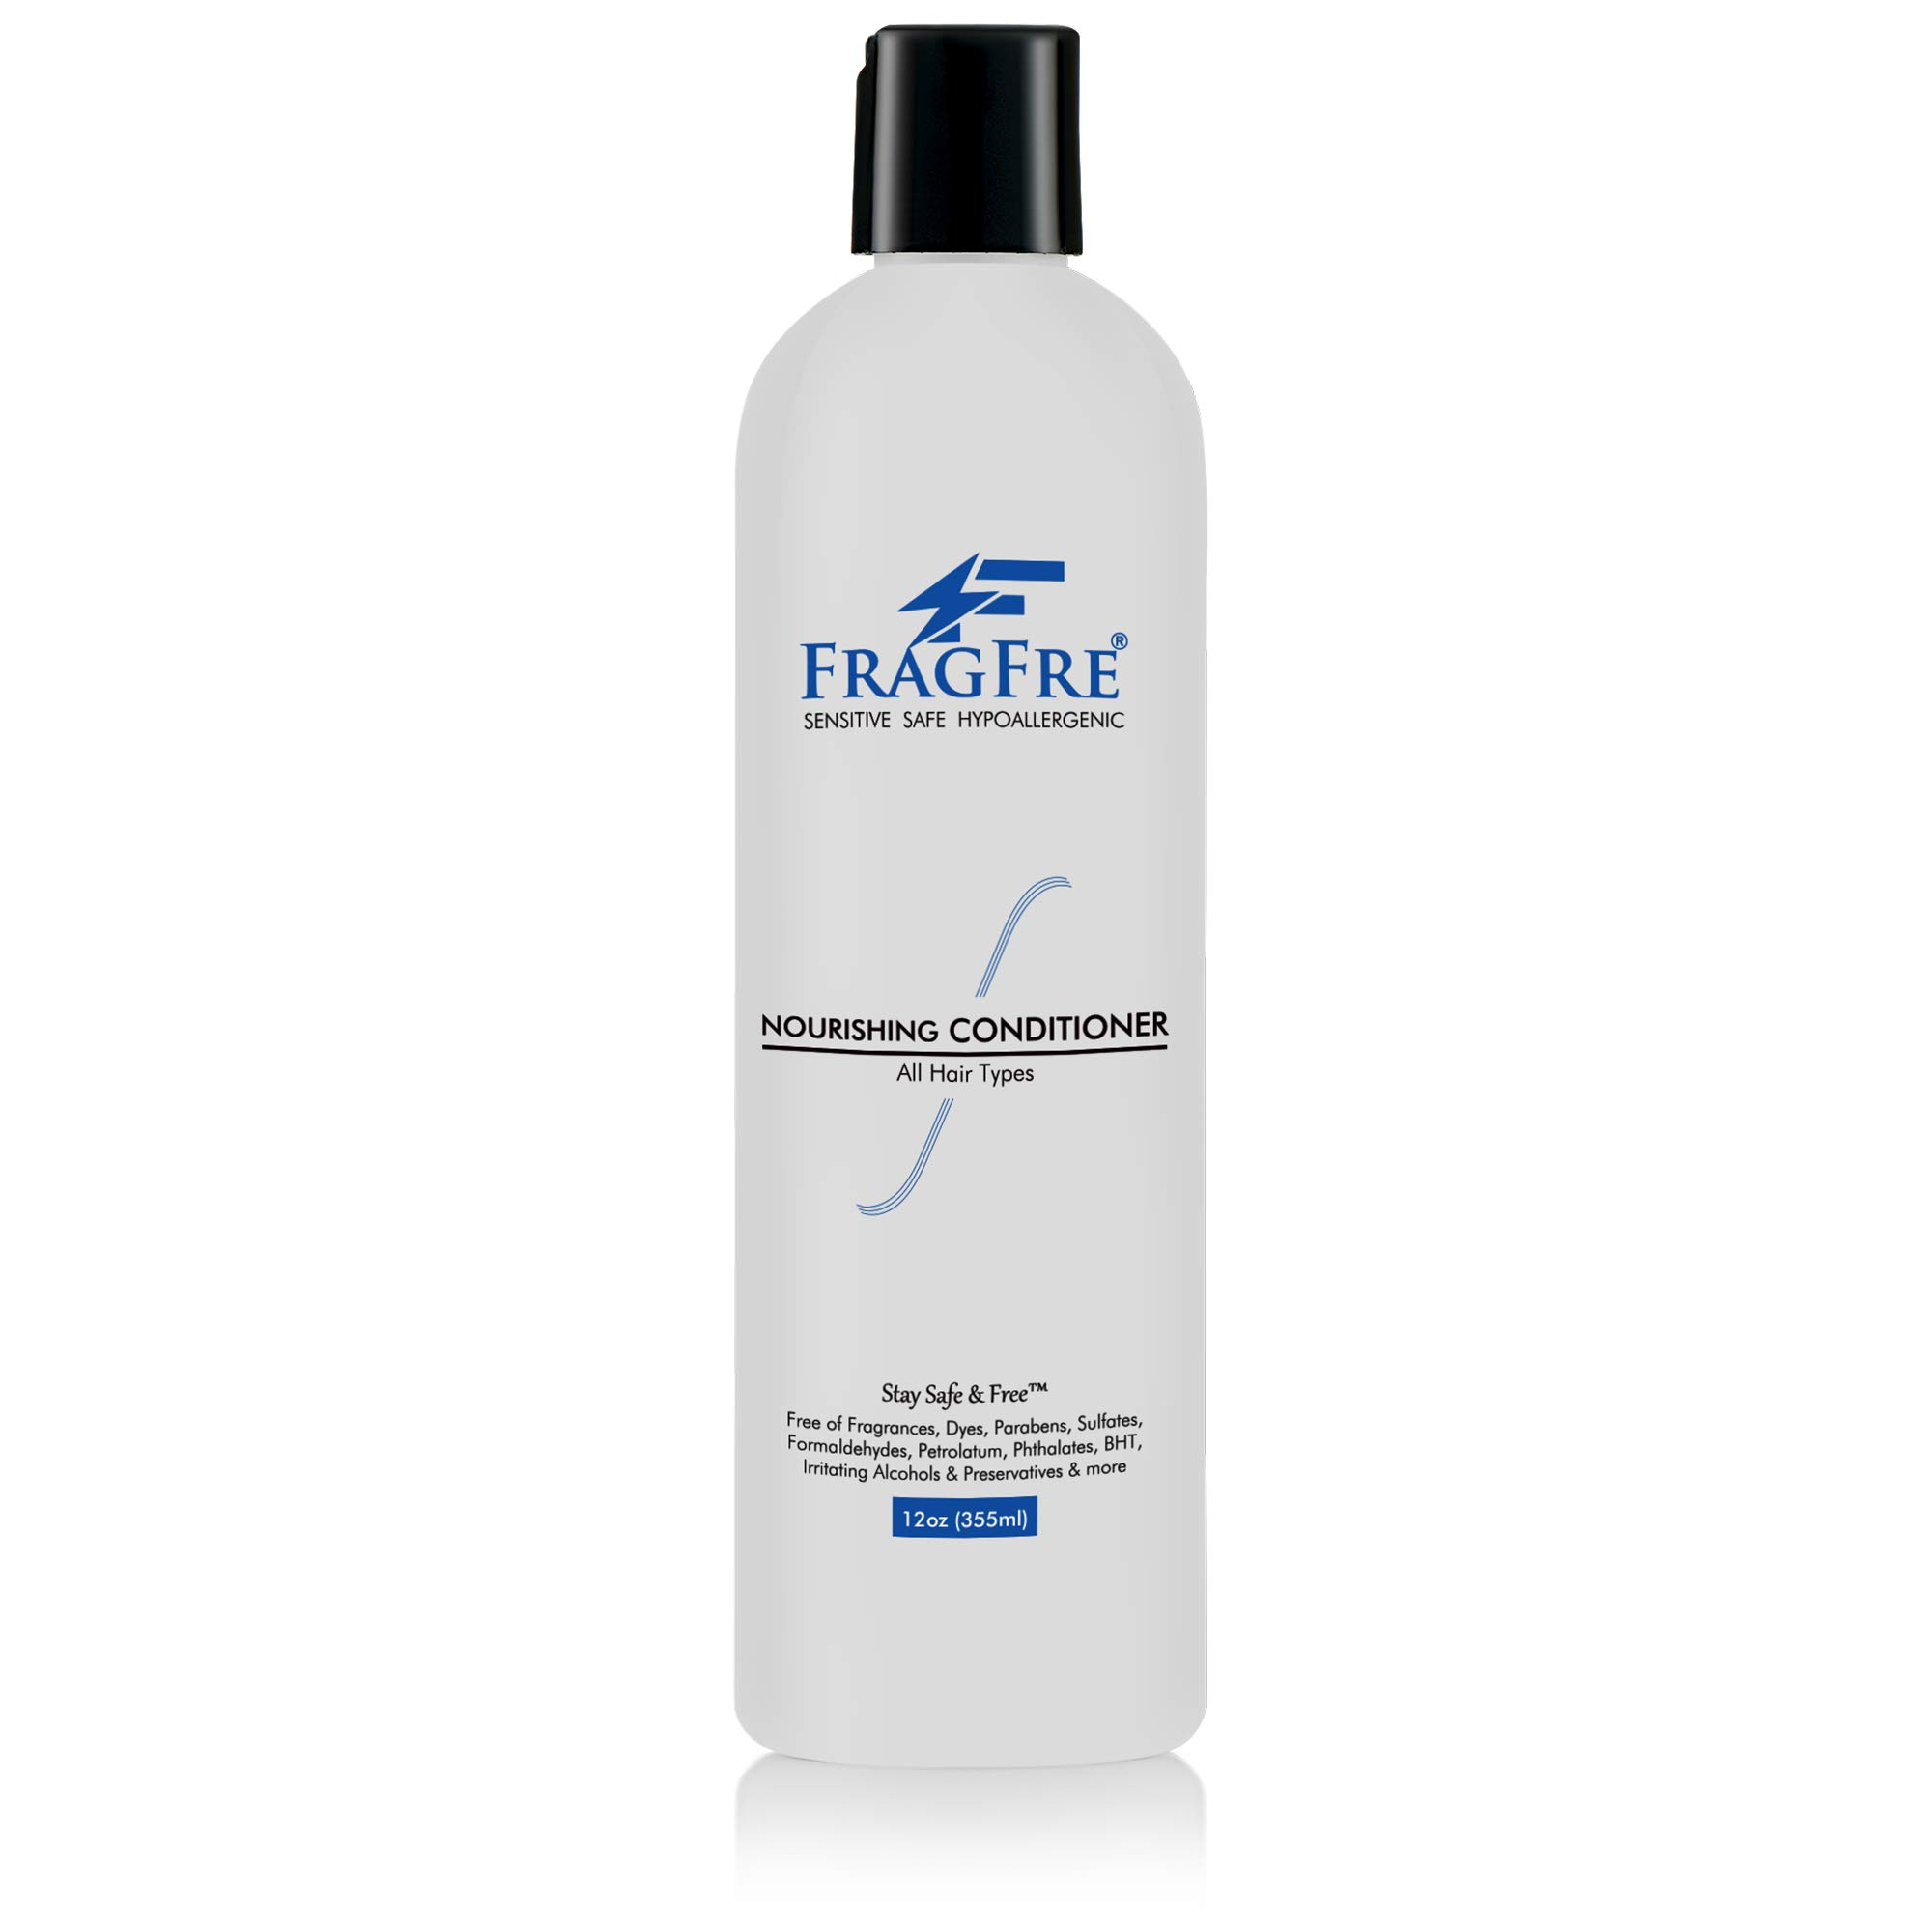 FRAGFRE Fragrance Free Conditioner 12 oz - Sulfate Free Parabens Free Hypoallergenic - Hair Conditioner for Sensitive Skin - Deep Conditioning for Normal Treated and Fragile Hairs - Gluten Free Vegan by FRAGFRE